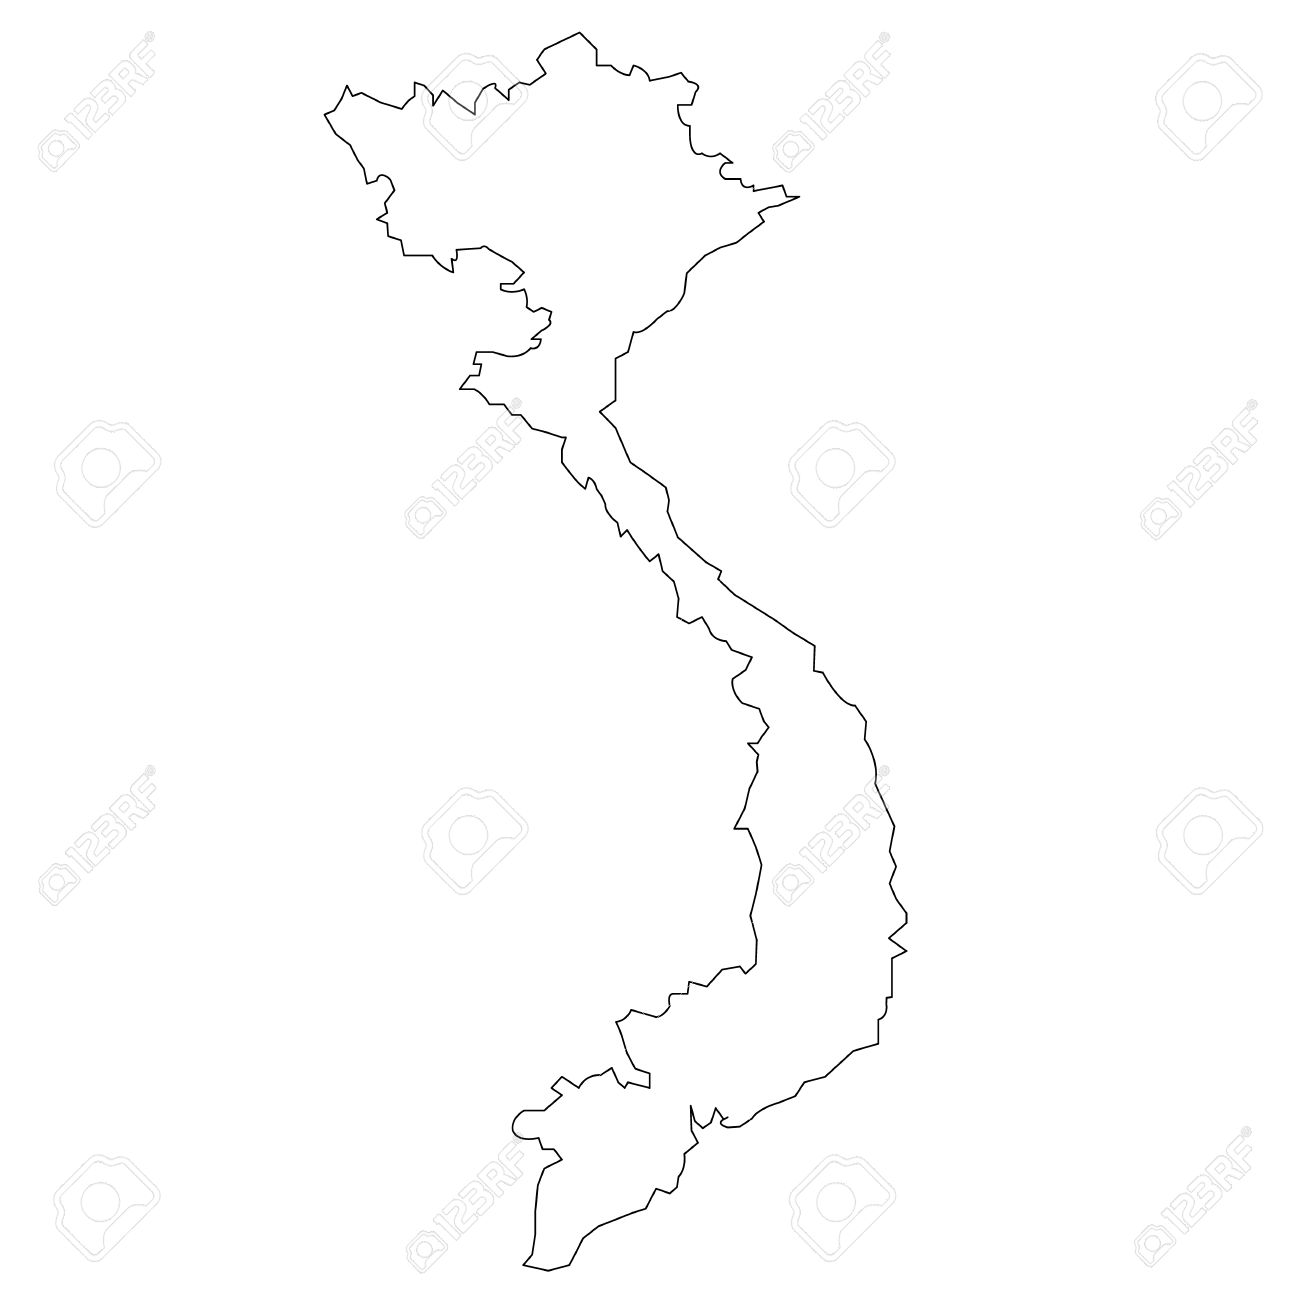 Vector Map Of Vietnam Royalty Free Cliparts Vectors And Stock - Vietnam map outline